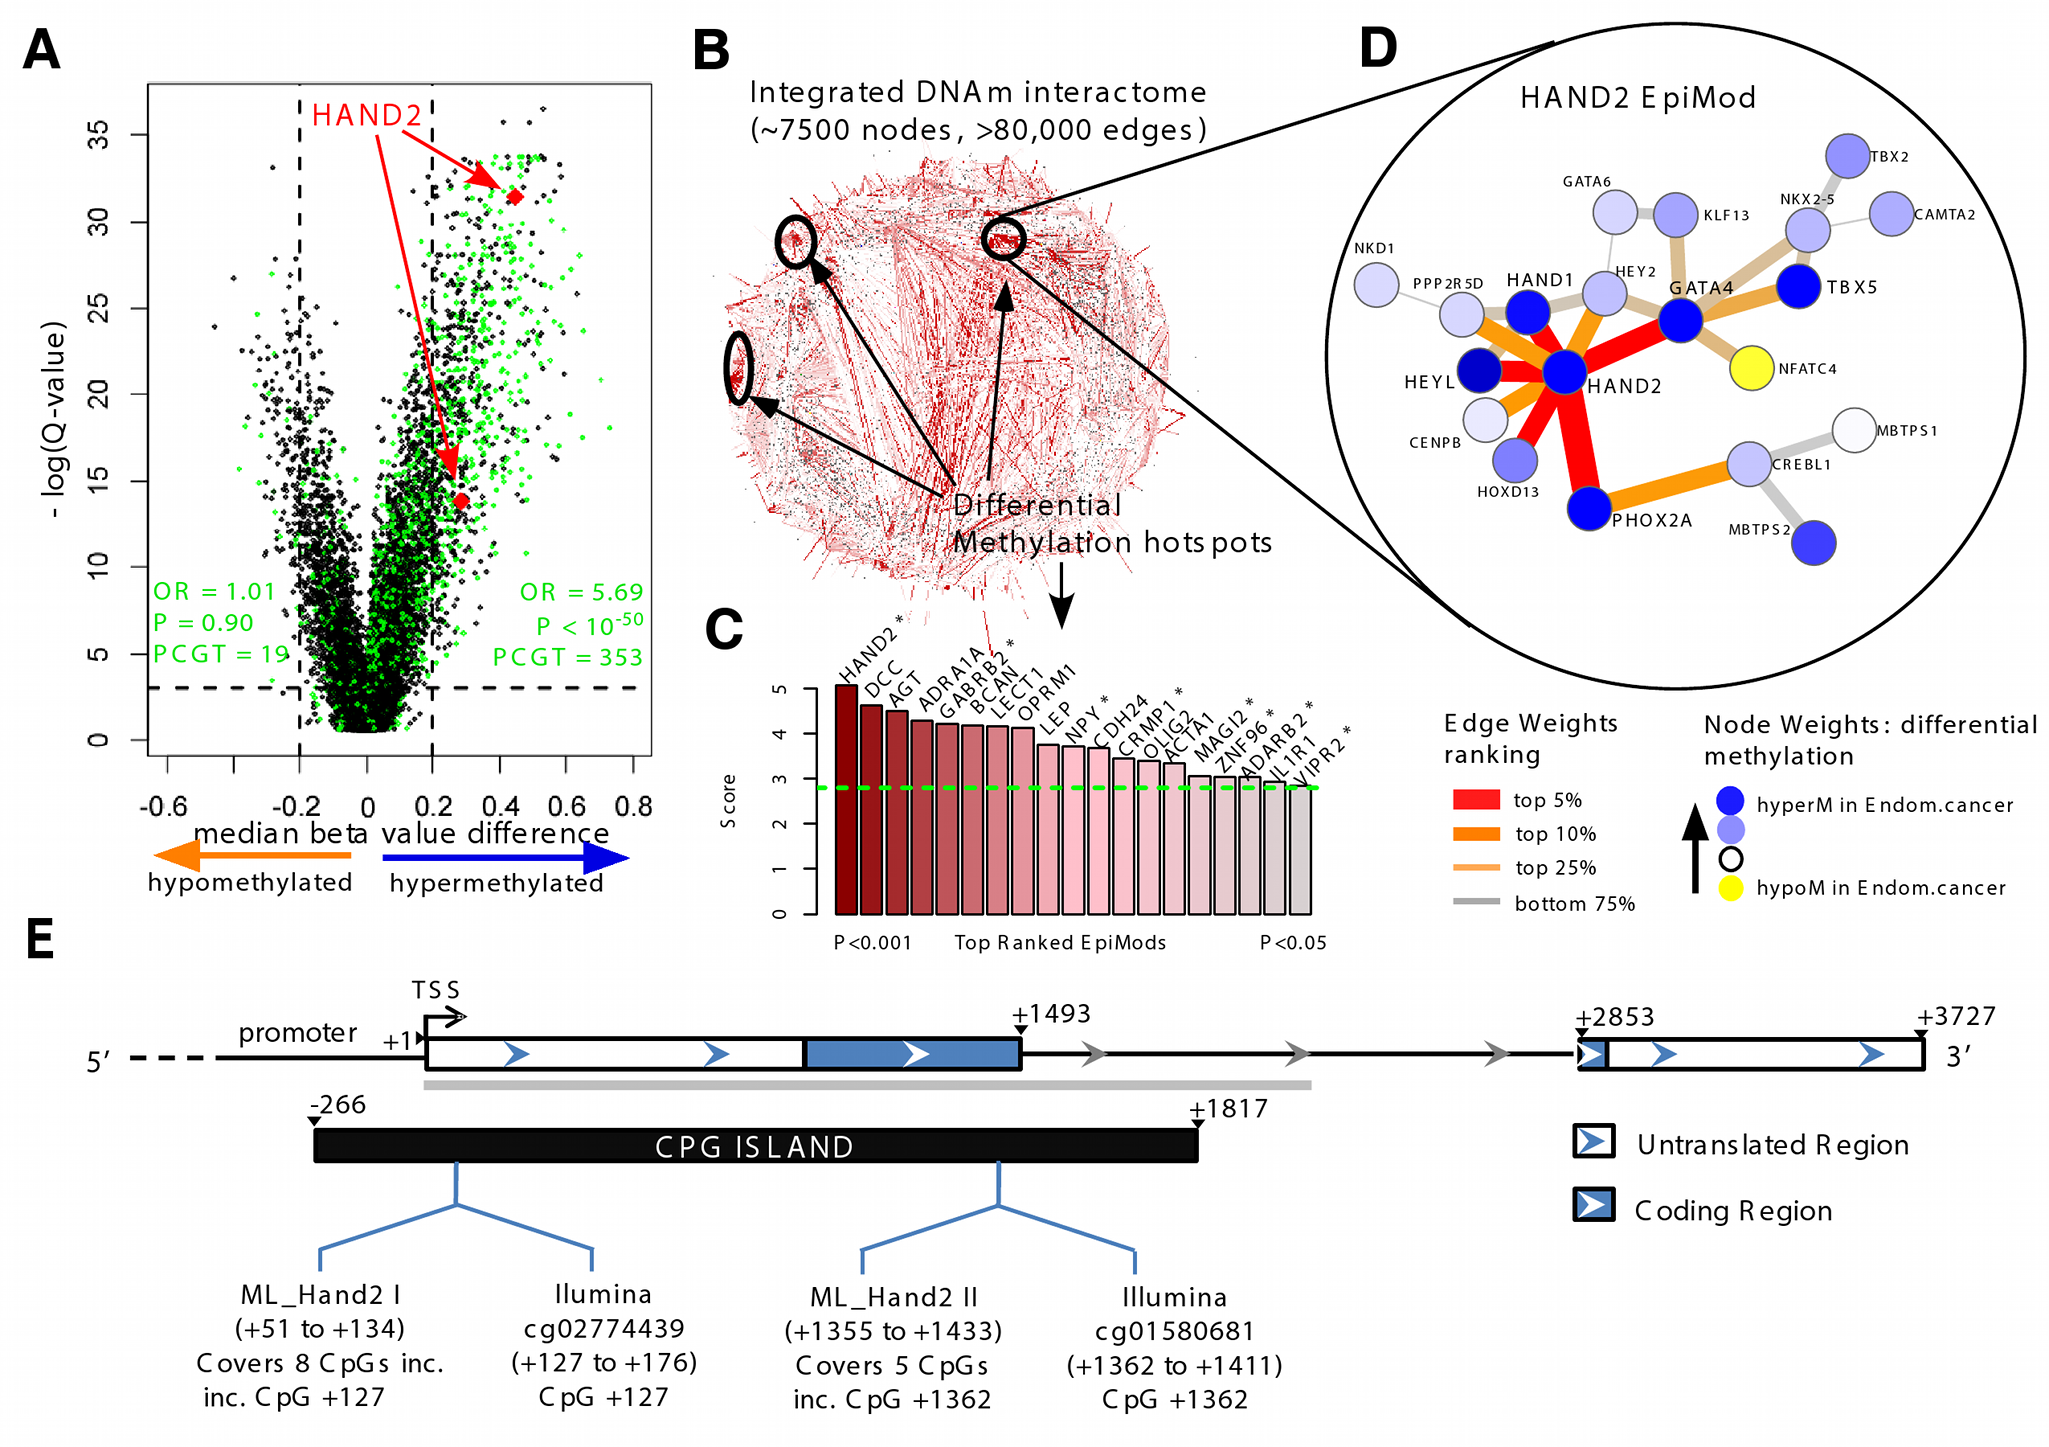 Discovery of <i>HAND2</i> methylation as a core feature in endometrial cancer.